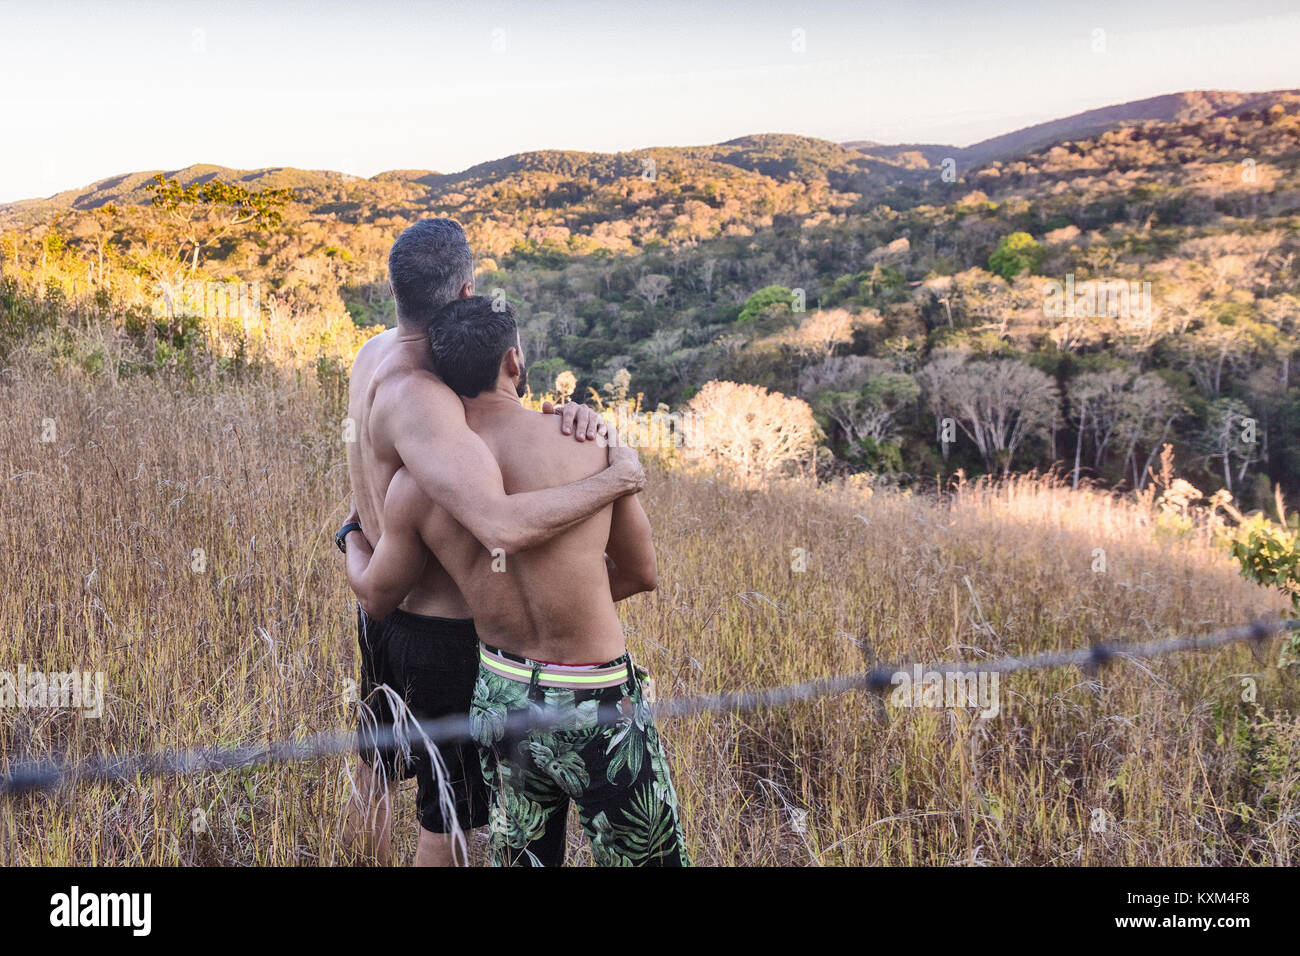 Rear view of two bare chested men looking out at landscape,Guaramiranga,Ceara,Brazil - Stock Image